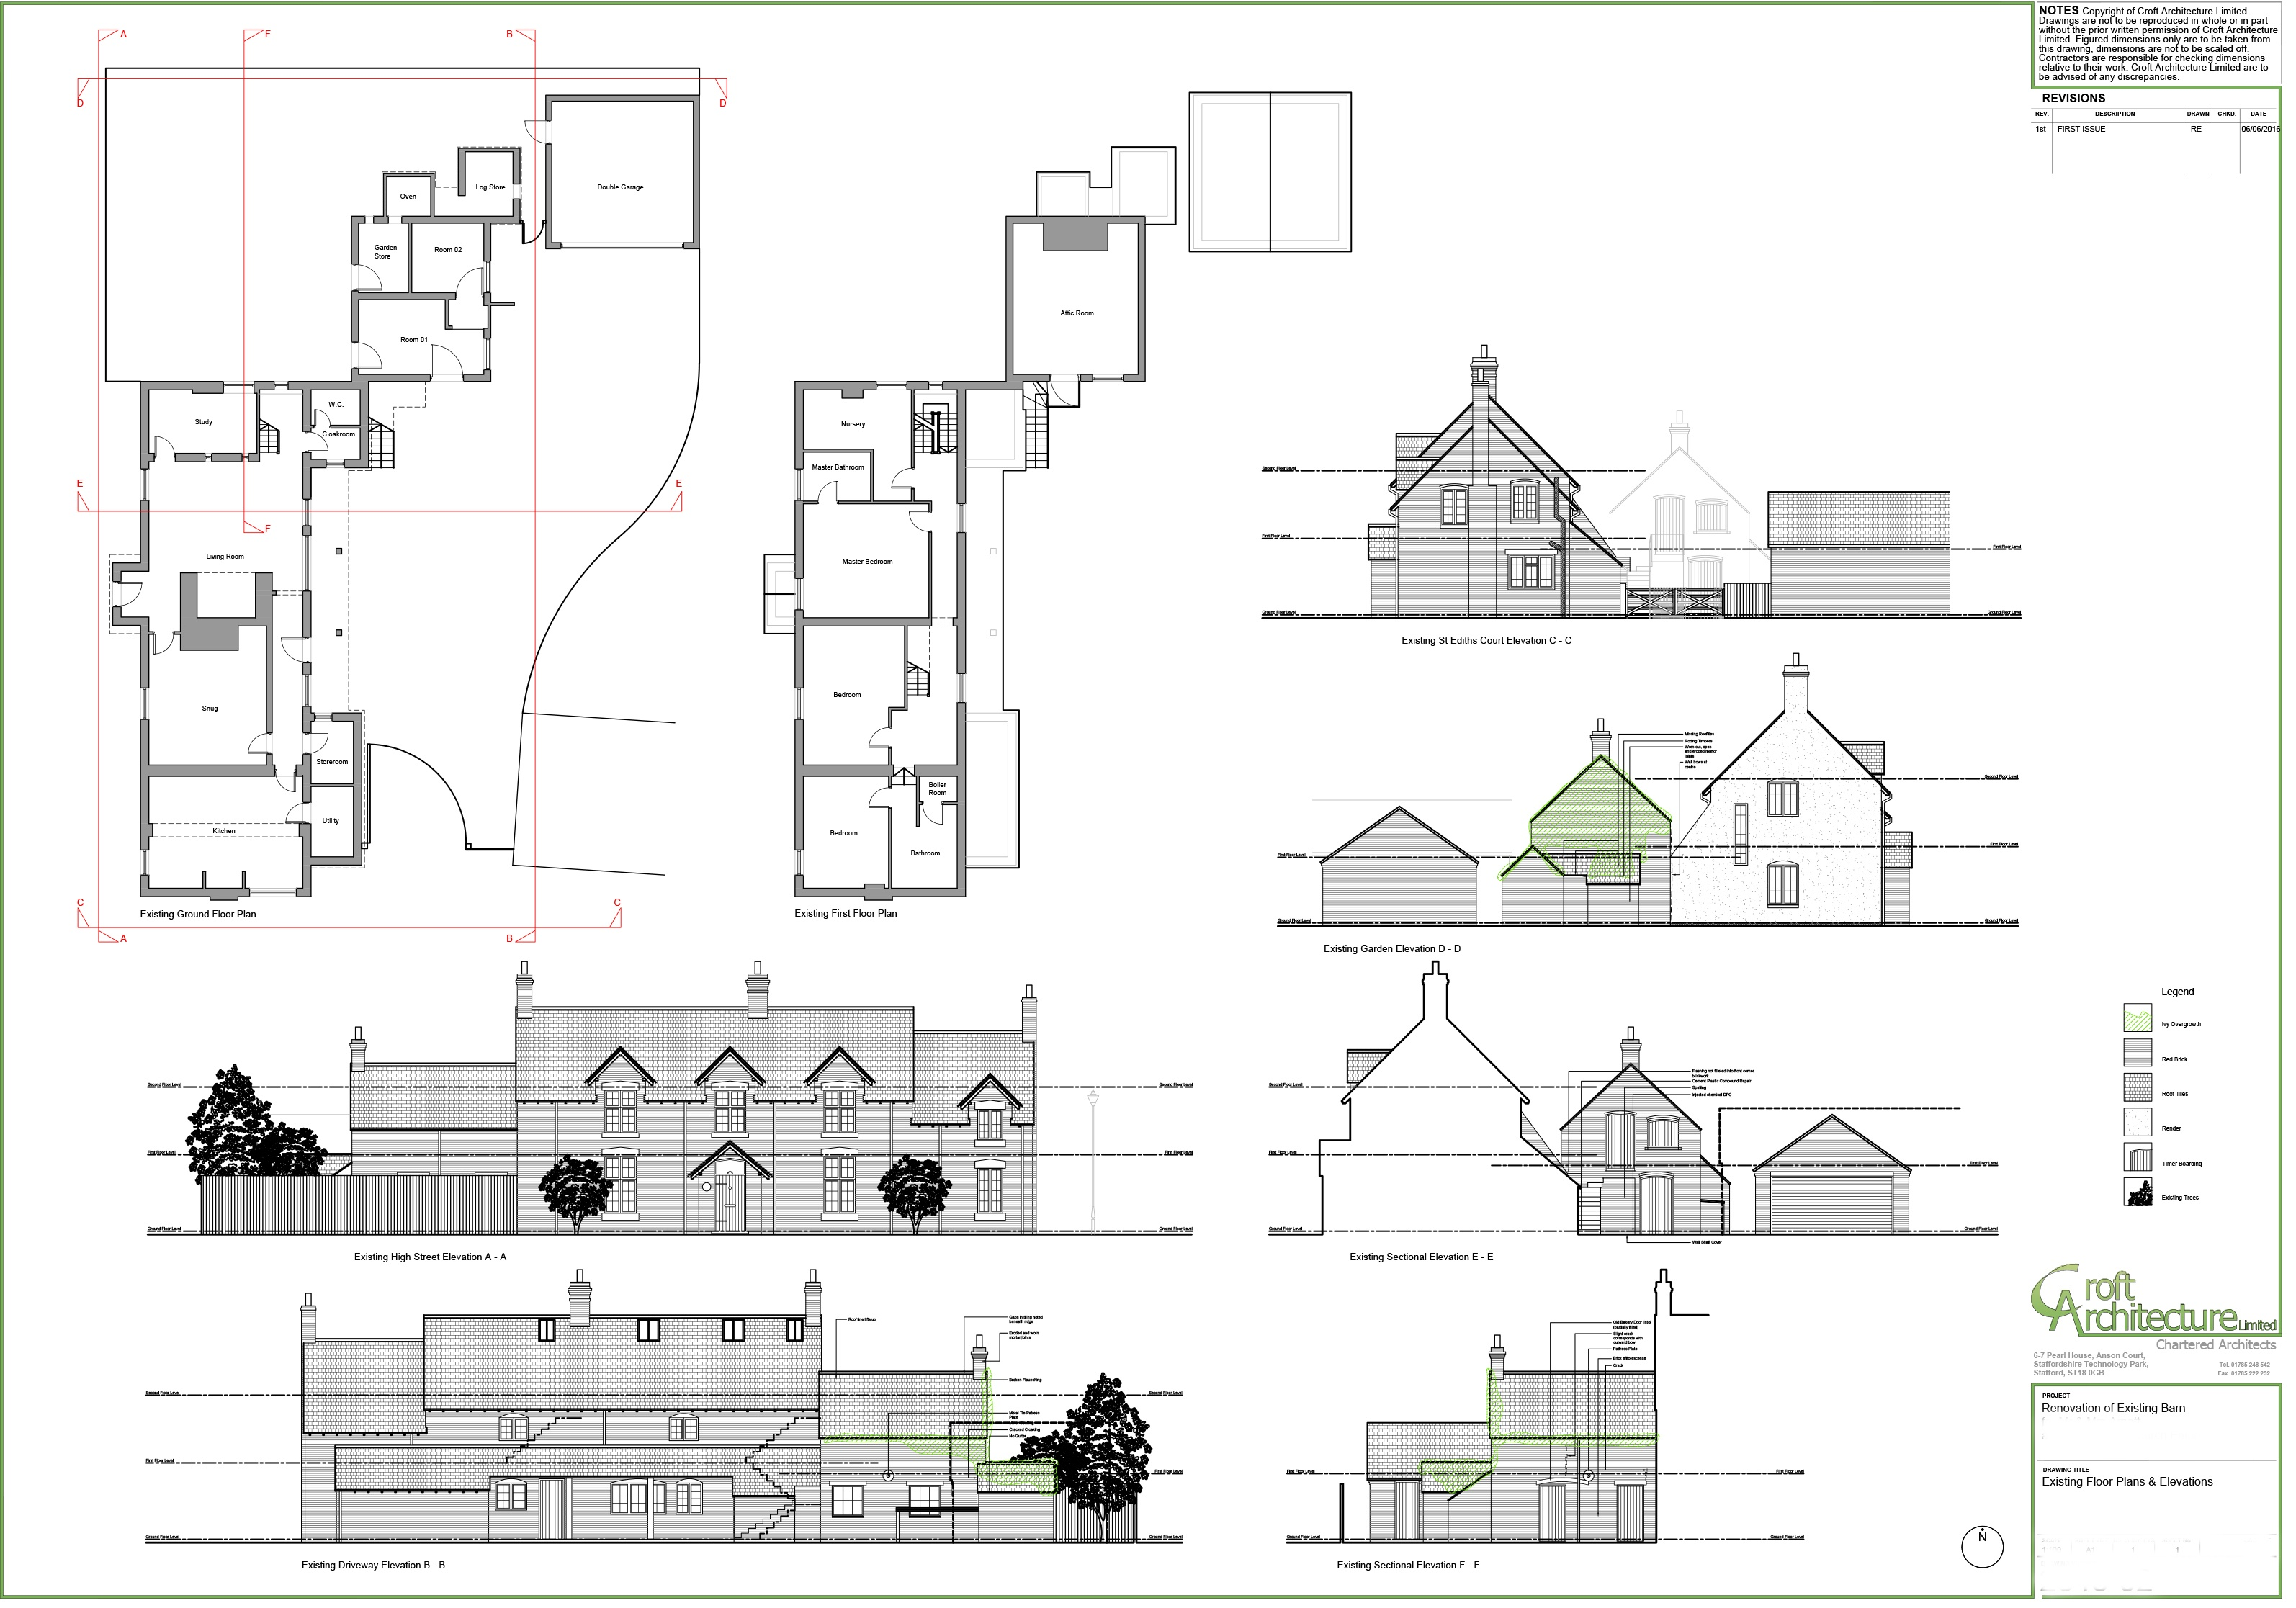 Croft Architecture Barn Conversion Existing Plans